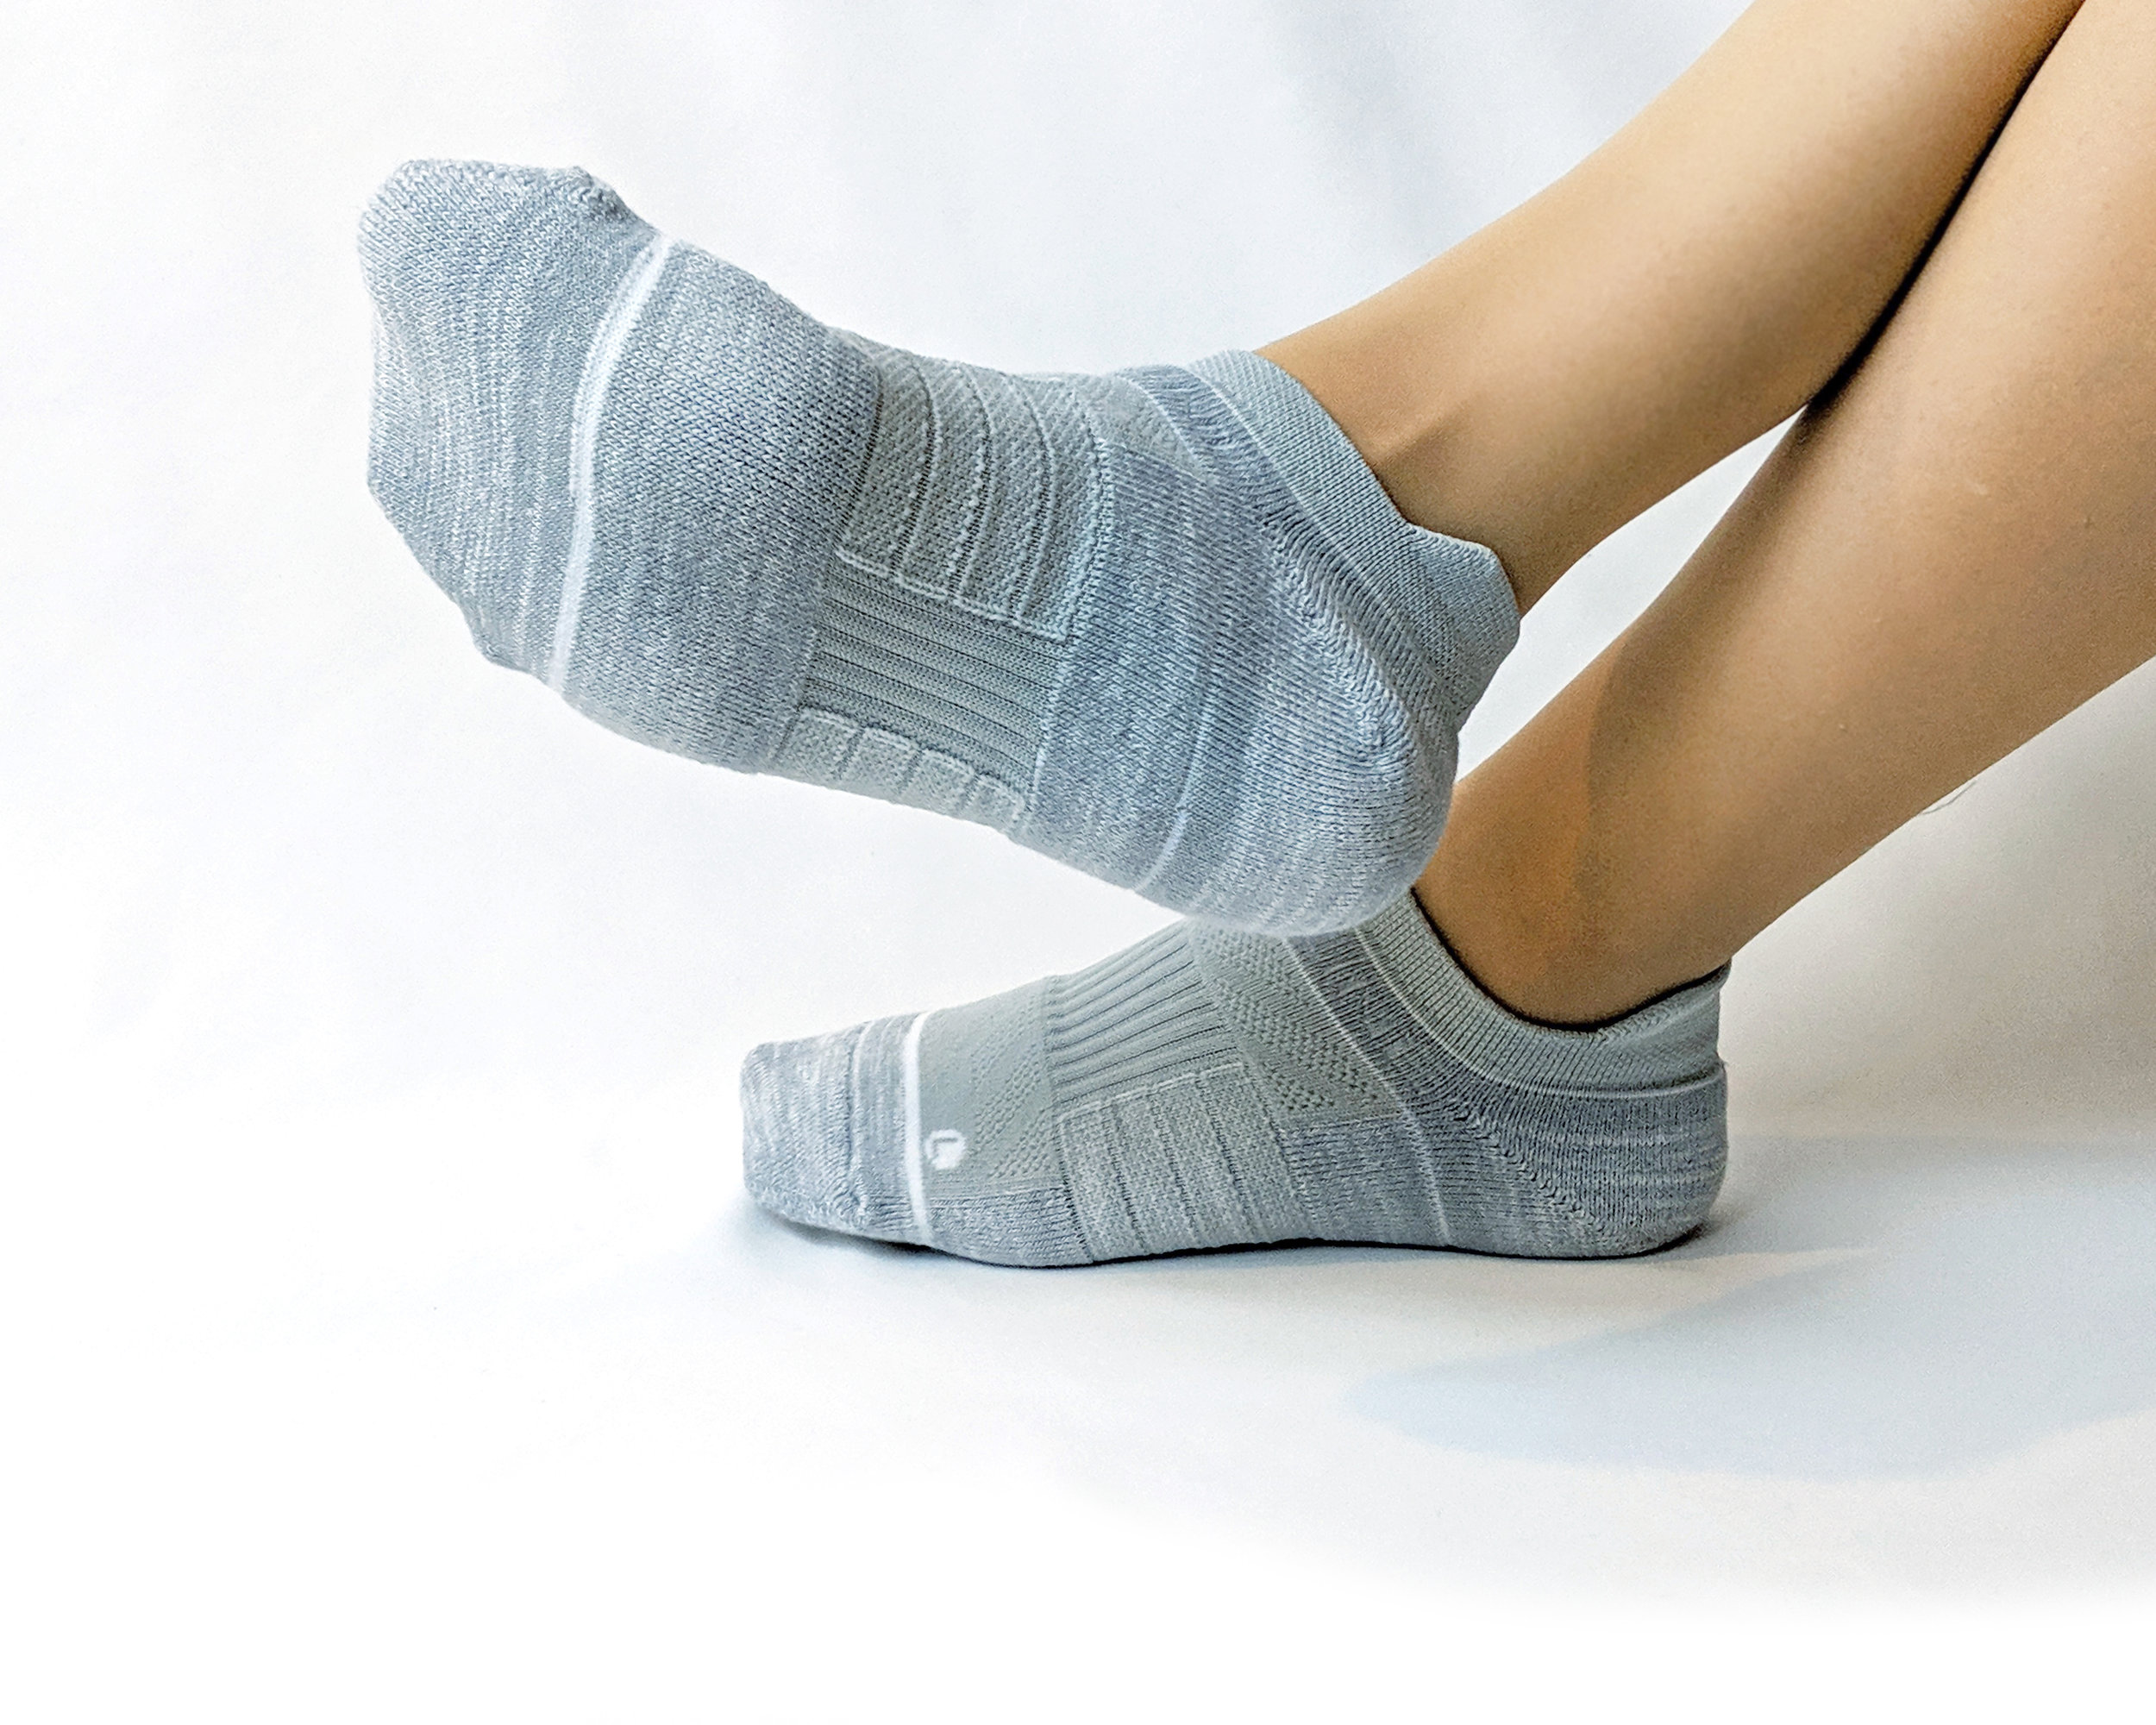 Kick back and relax! Strideline socks will make finding comfortable socks easy. Be sure to check out their full line. Photo Credit: The Sock Review